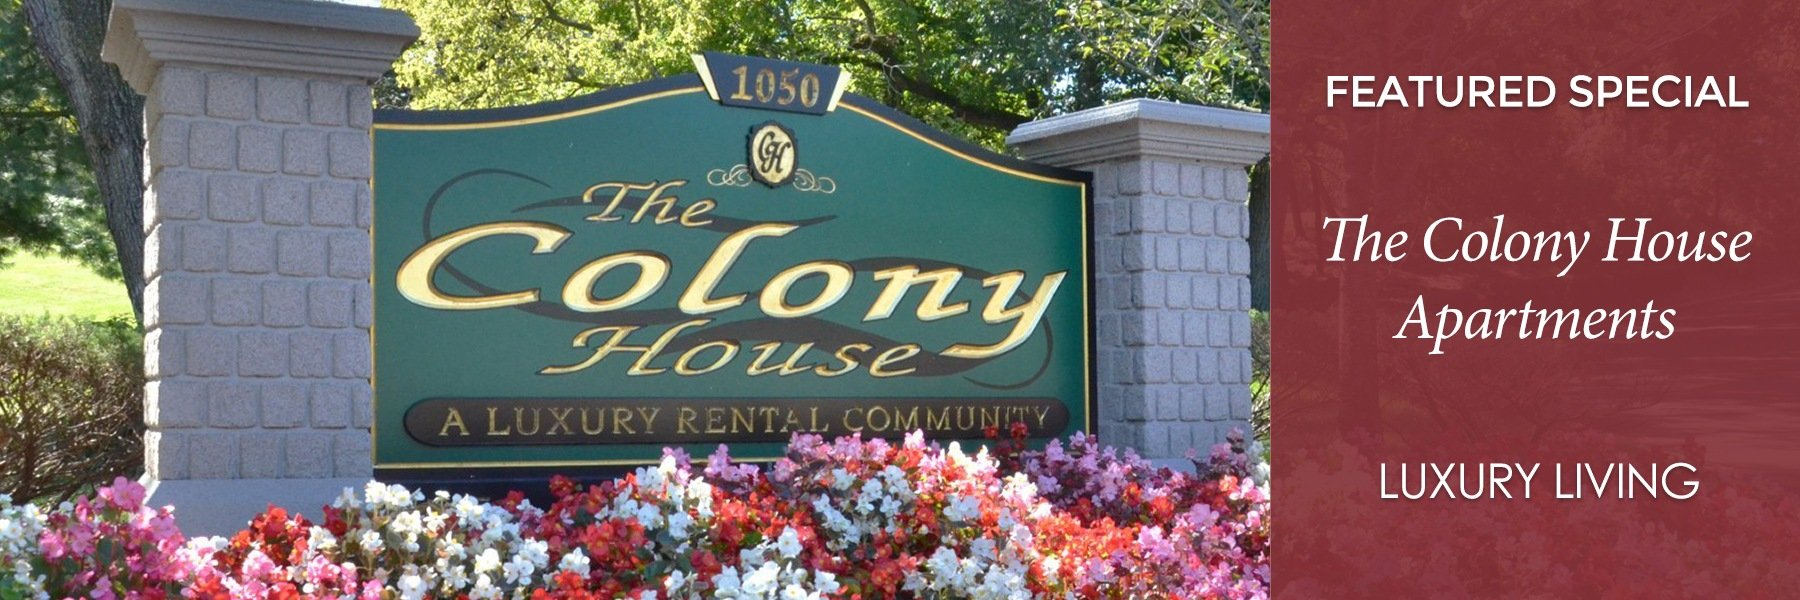 The Colony House Apartments For Rent in New Brunswick, NJ Specials